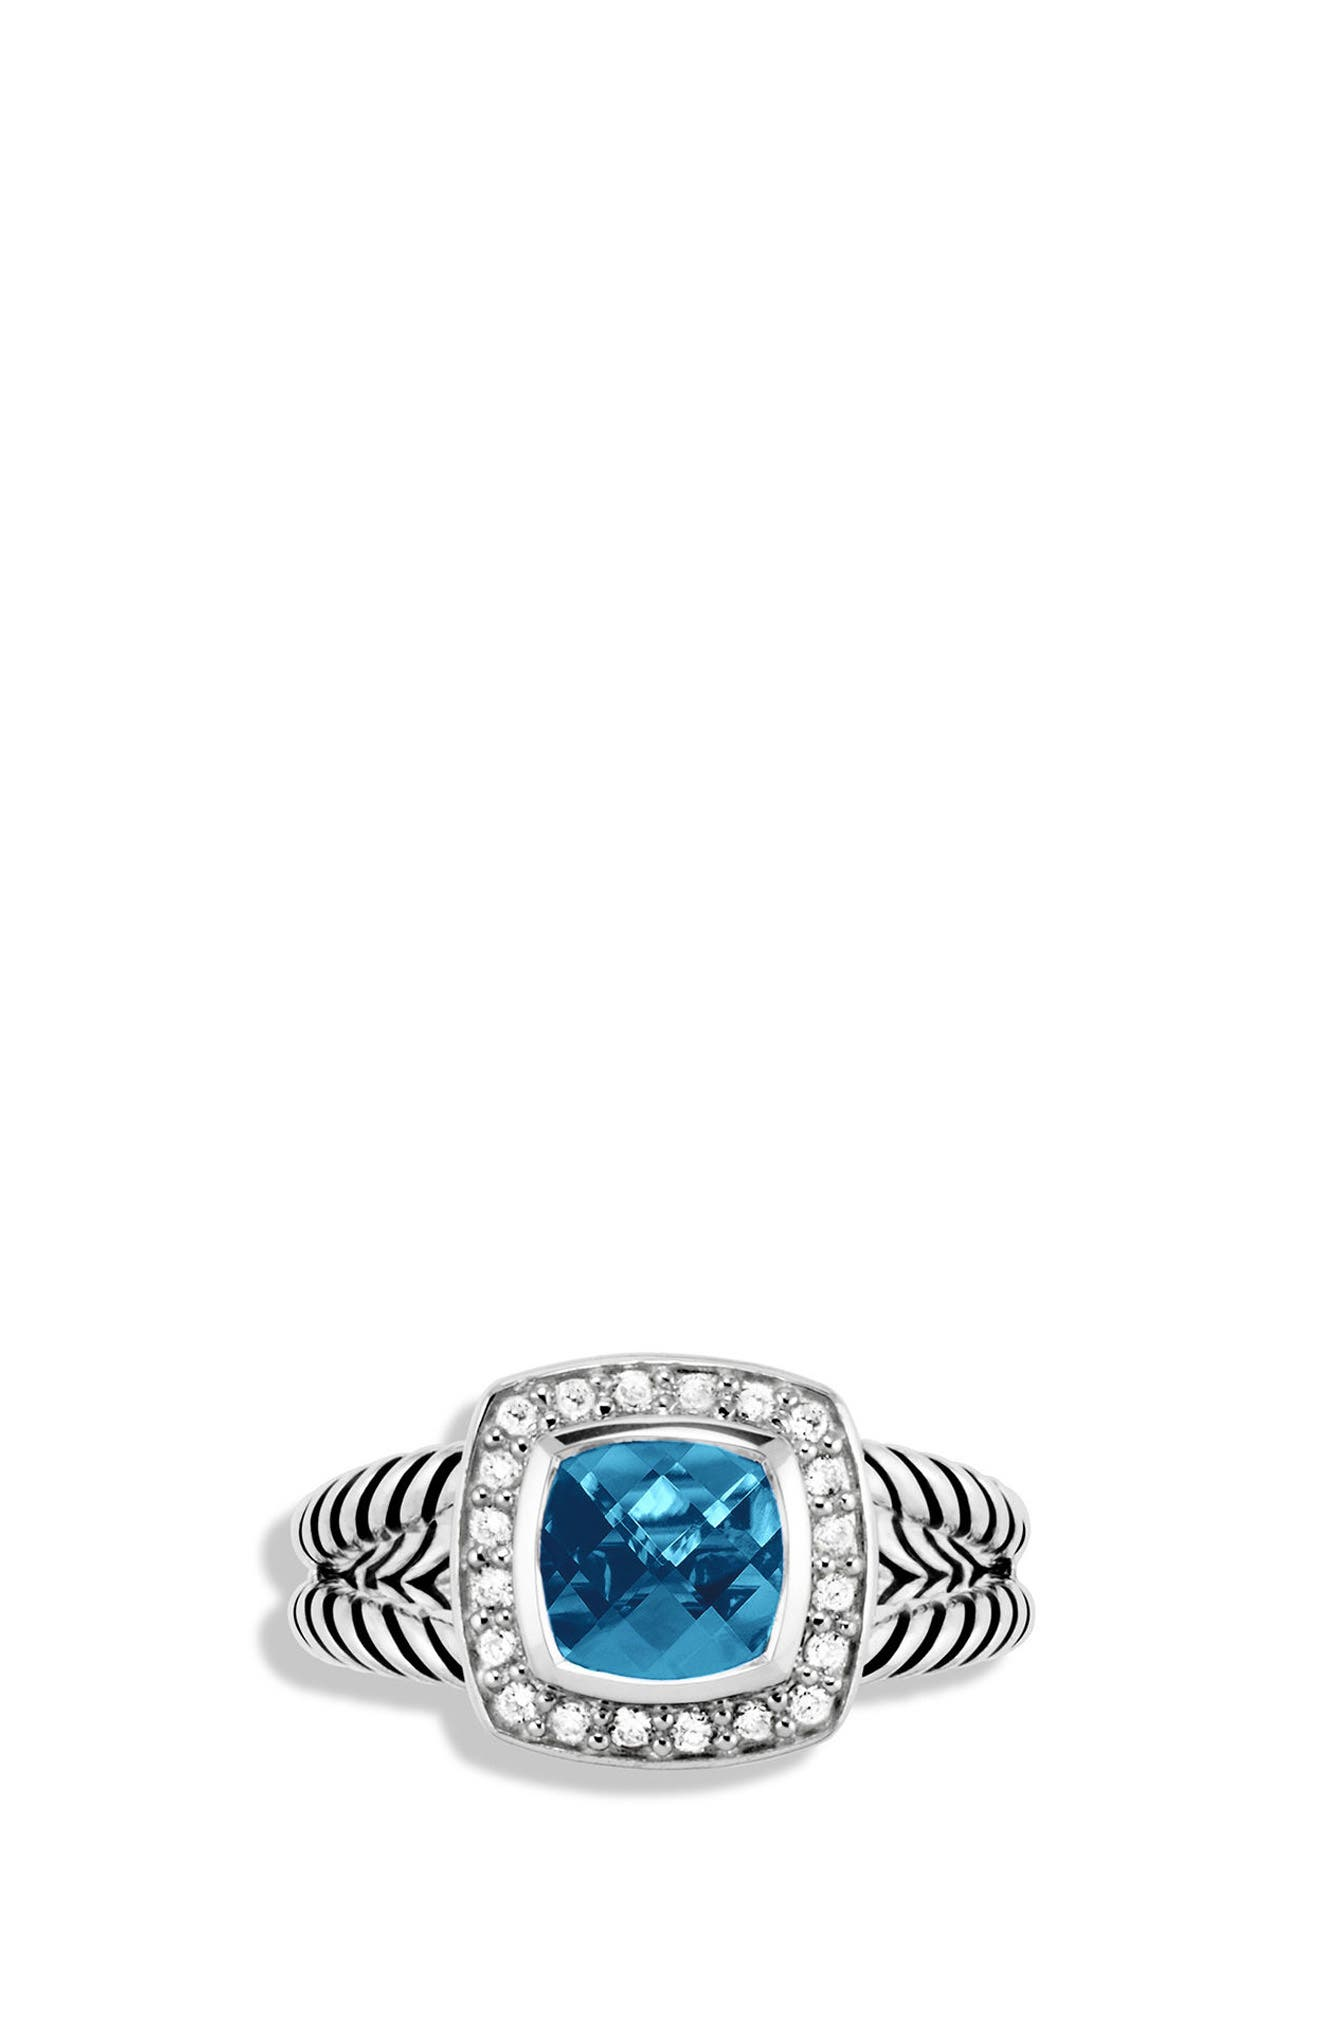 Alternate Image 3  - David Yurman Petite Albion® Ring with Diamonds